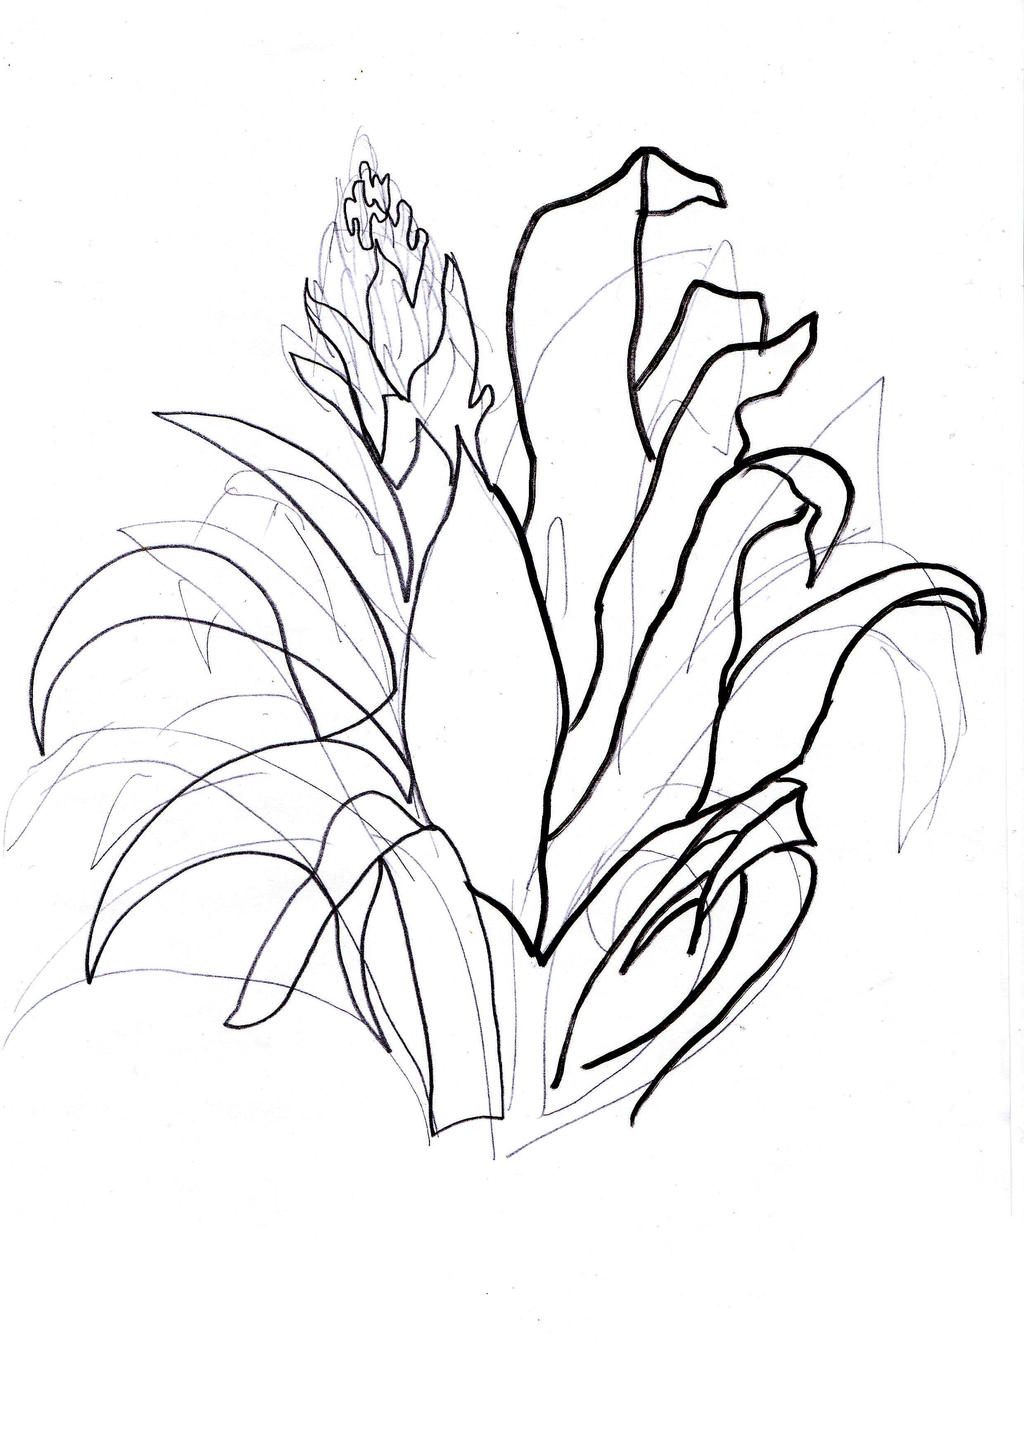 Continuous Line Drawing Of A Flower : Sketching and continuous line by kristina on deviantart